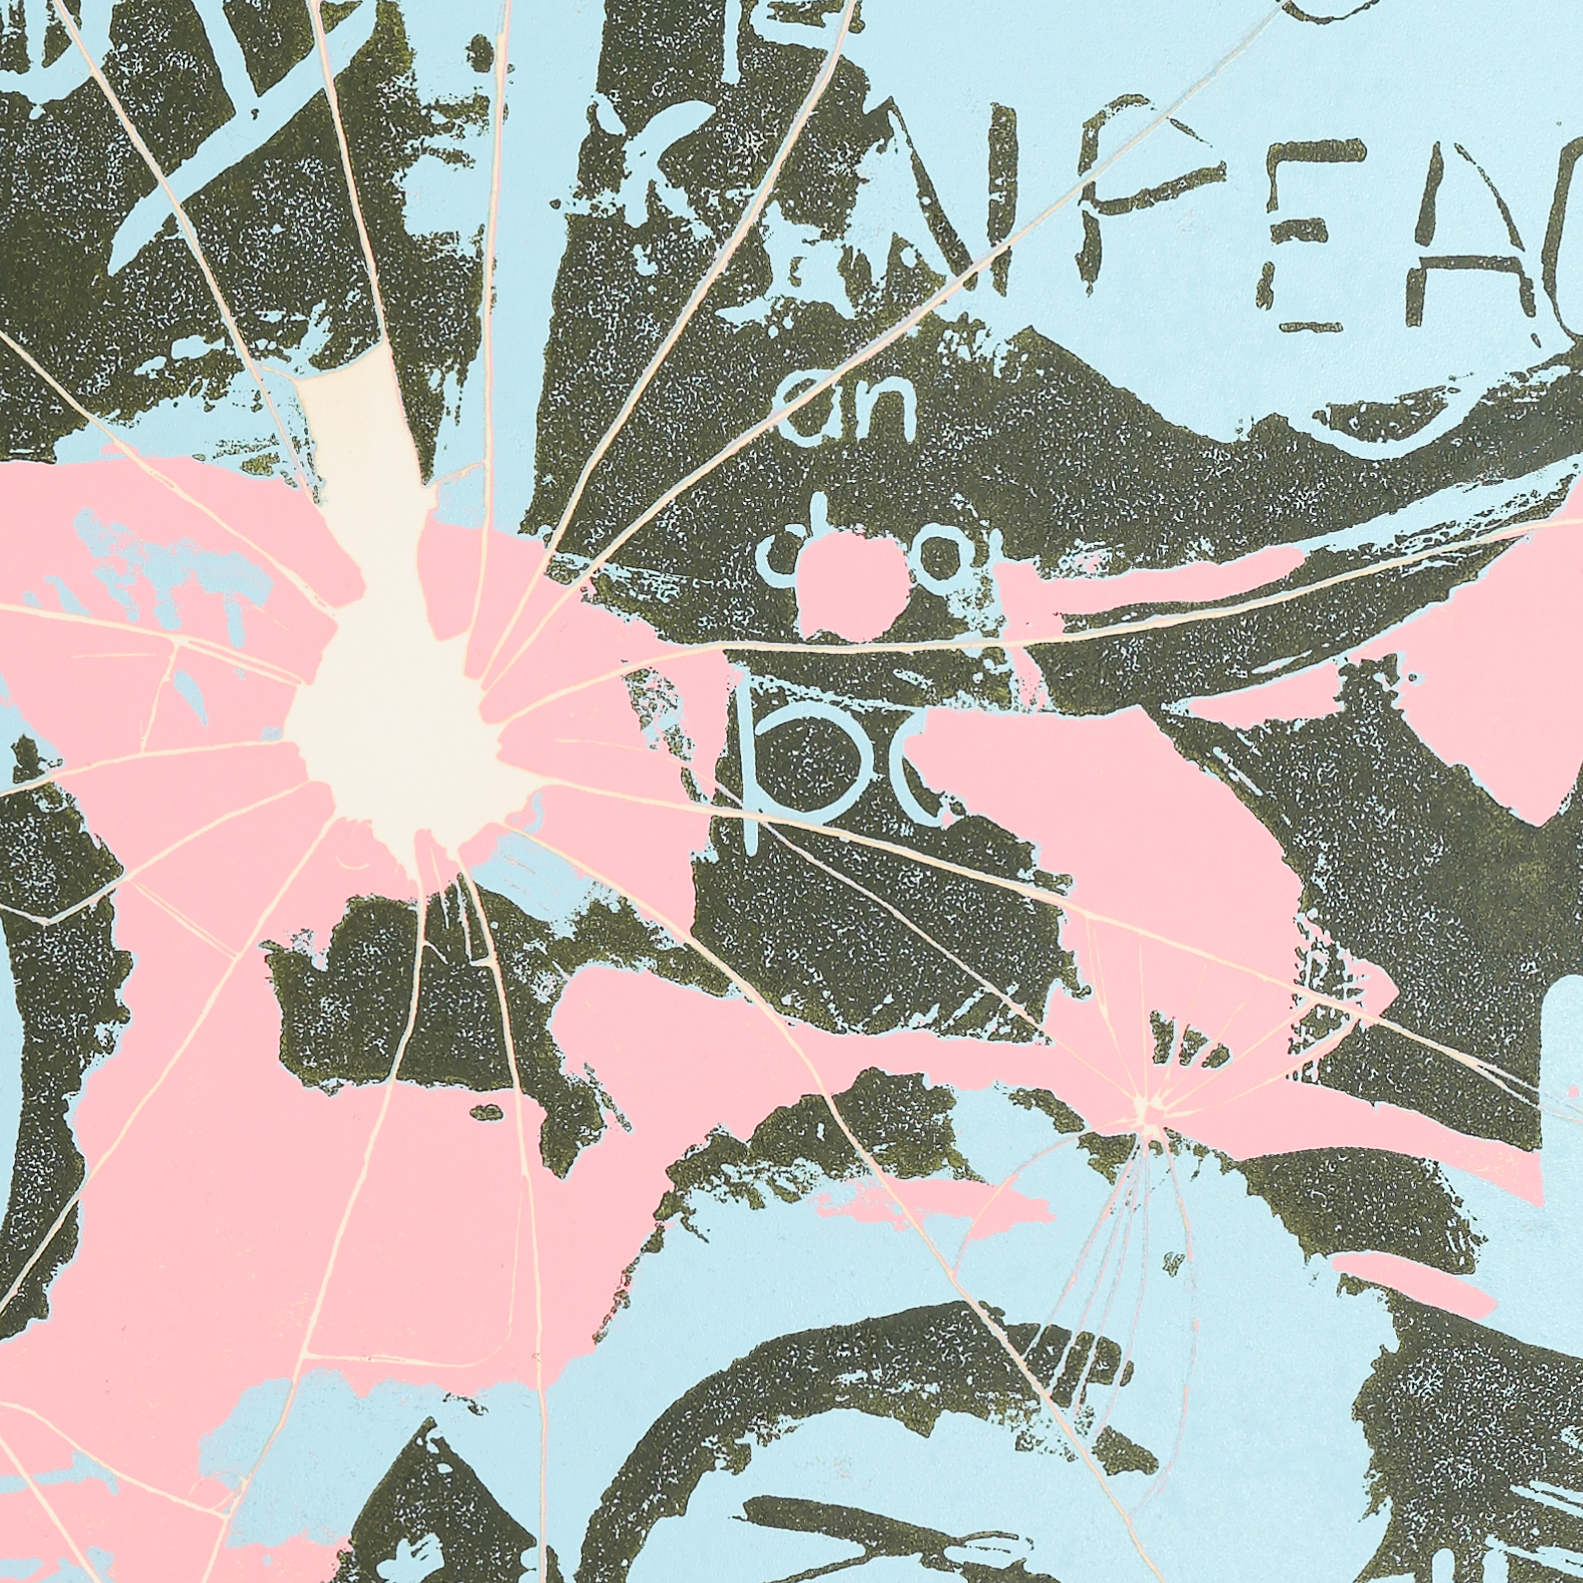 Close up section of a semi-abstract artwork with large areas of light blue, pink and black. Peace symbols and markings resembling broken glass are visible.